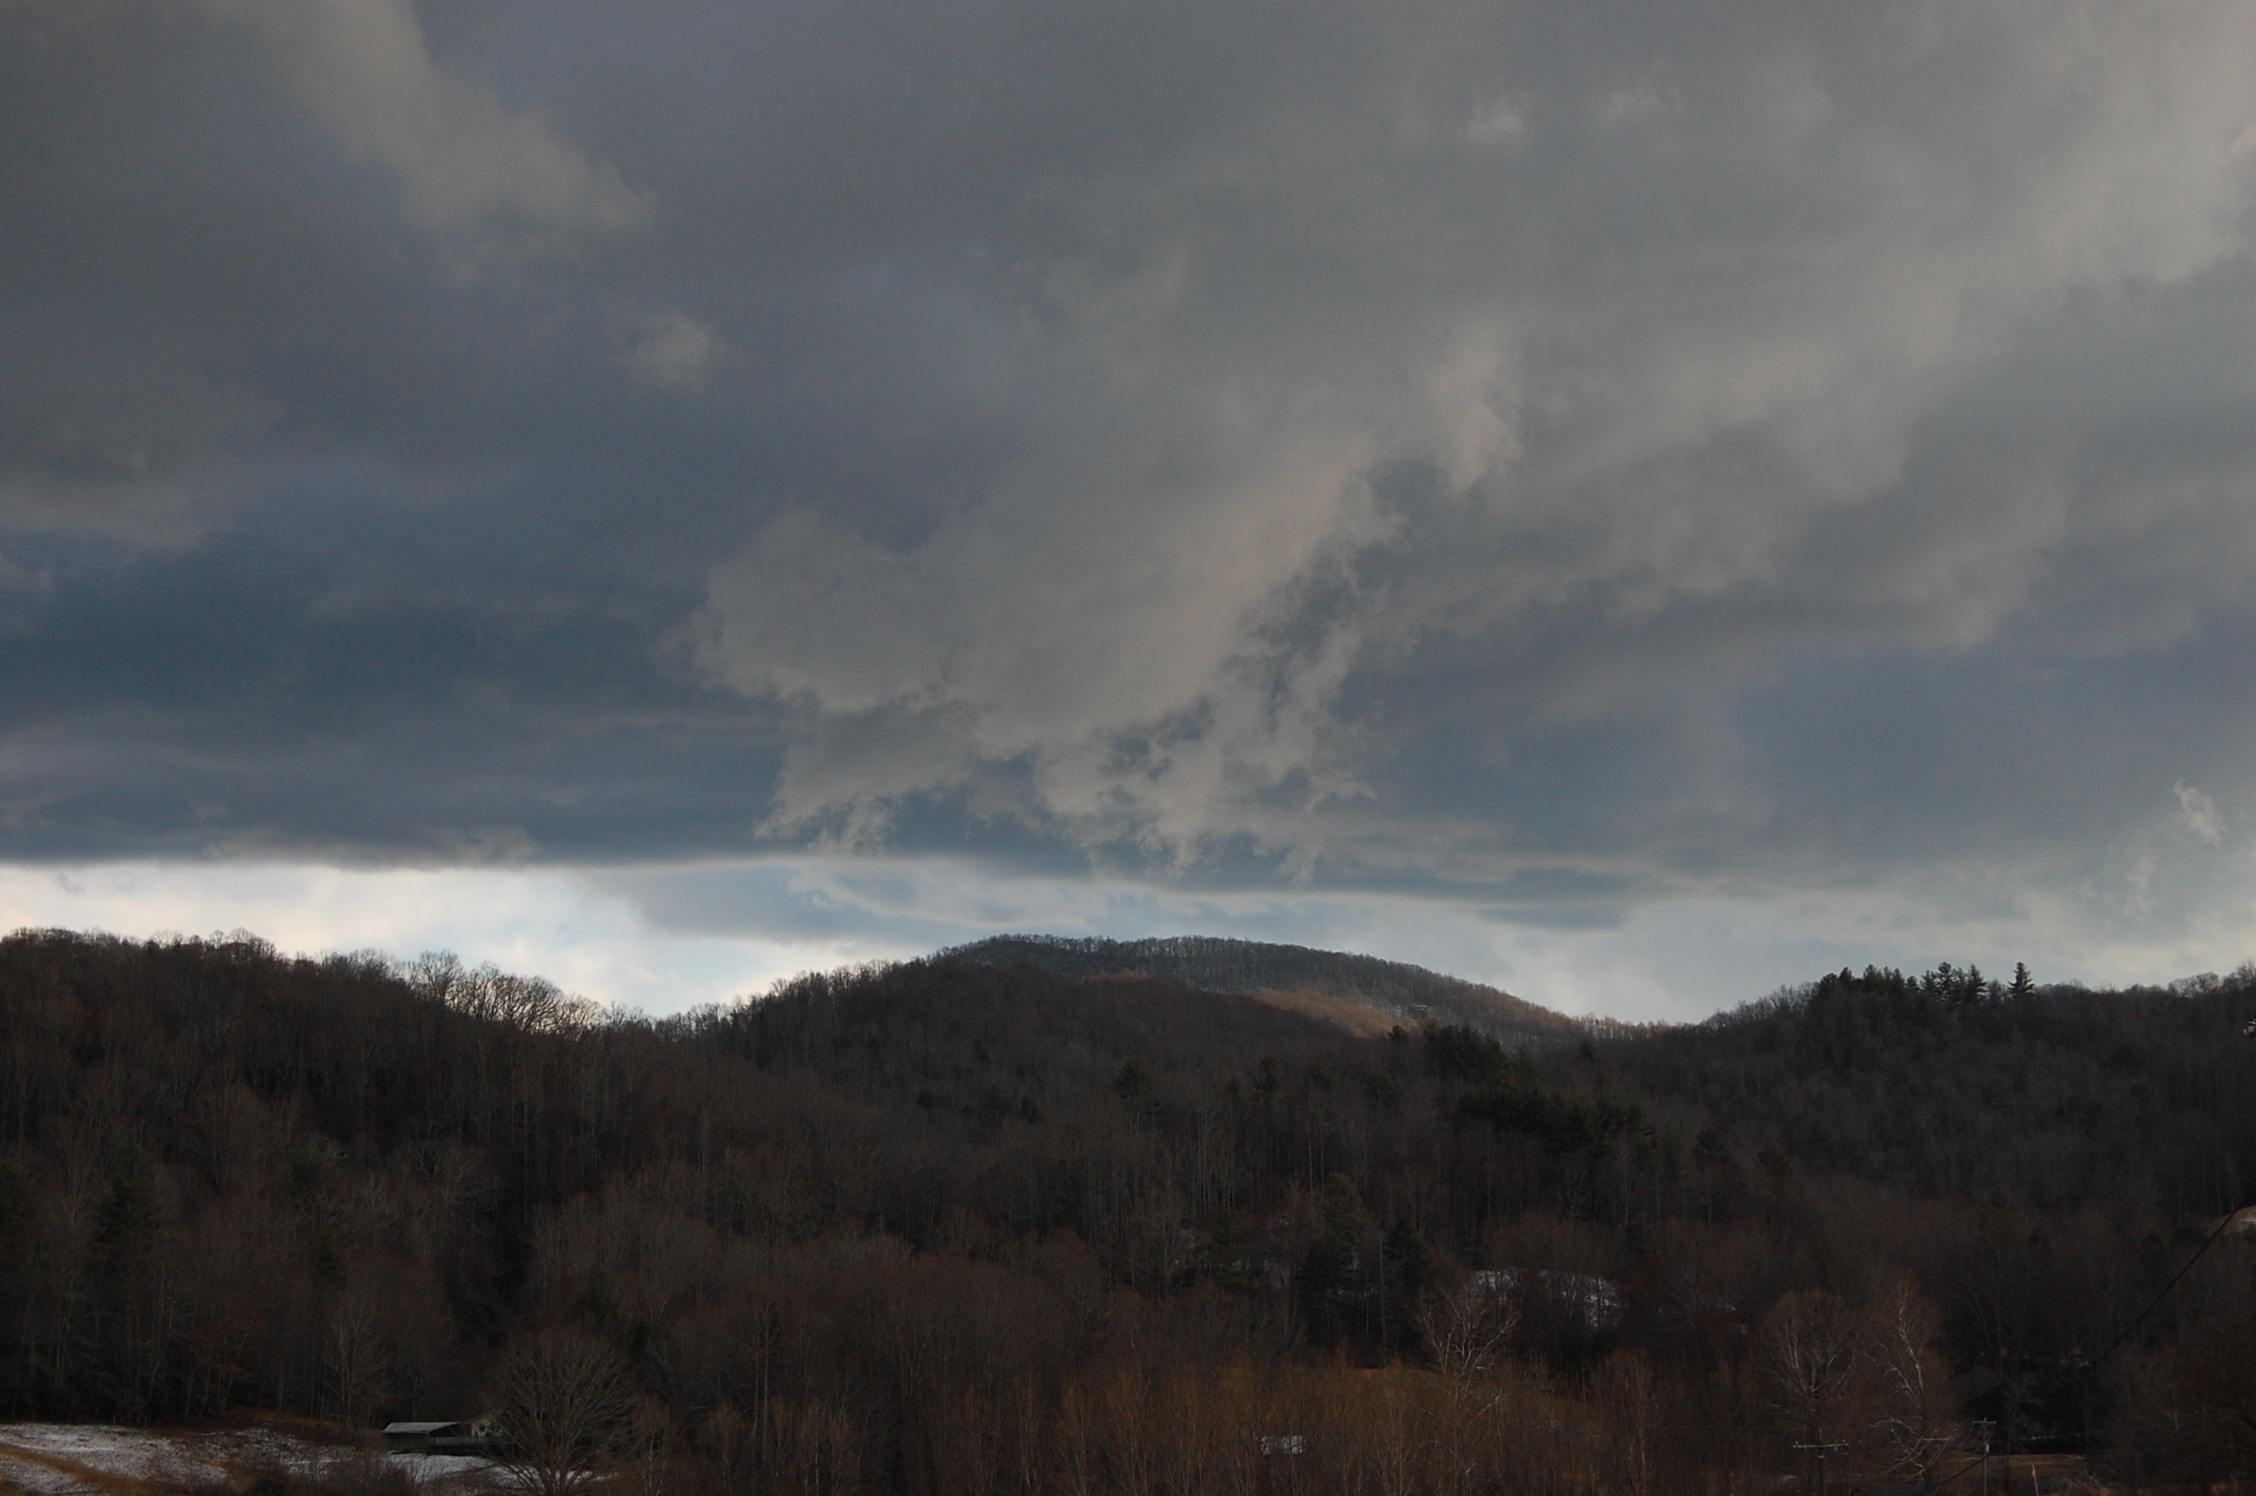 valle crucis Secluded in beauty the valle crucis conference center overlooks a peaceful, rural valley in the blue ridge mountains we offer our ministry of hospitality to a diverse range of church and.